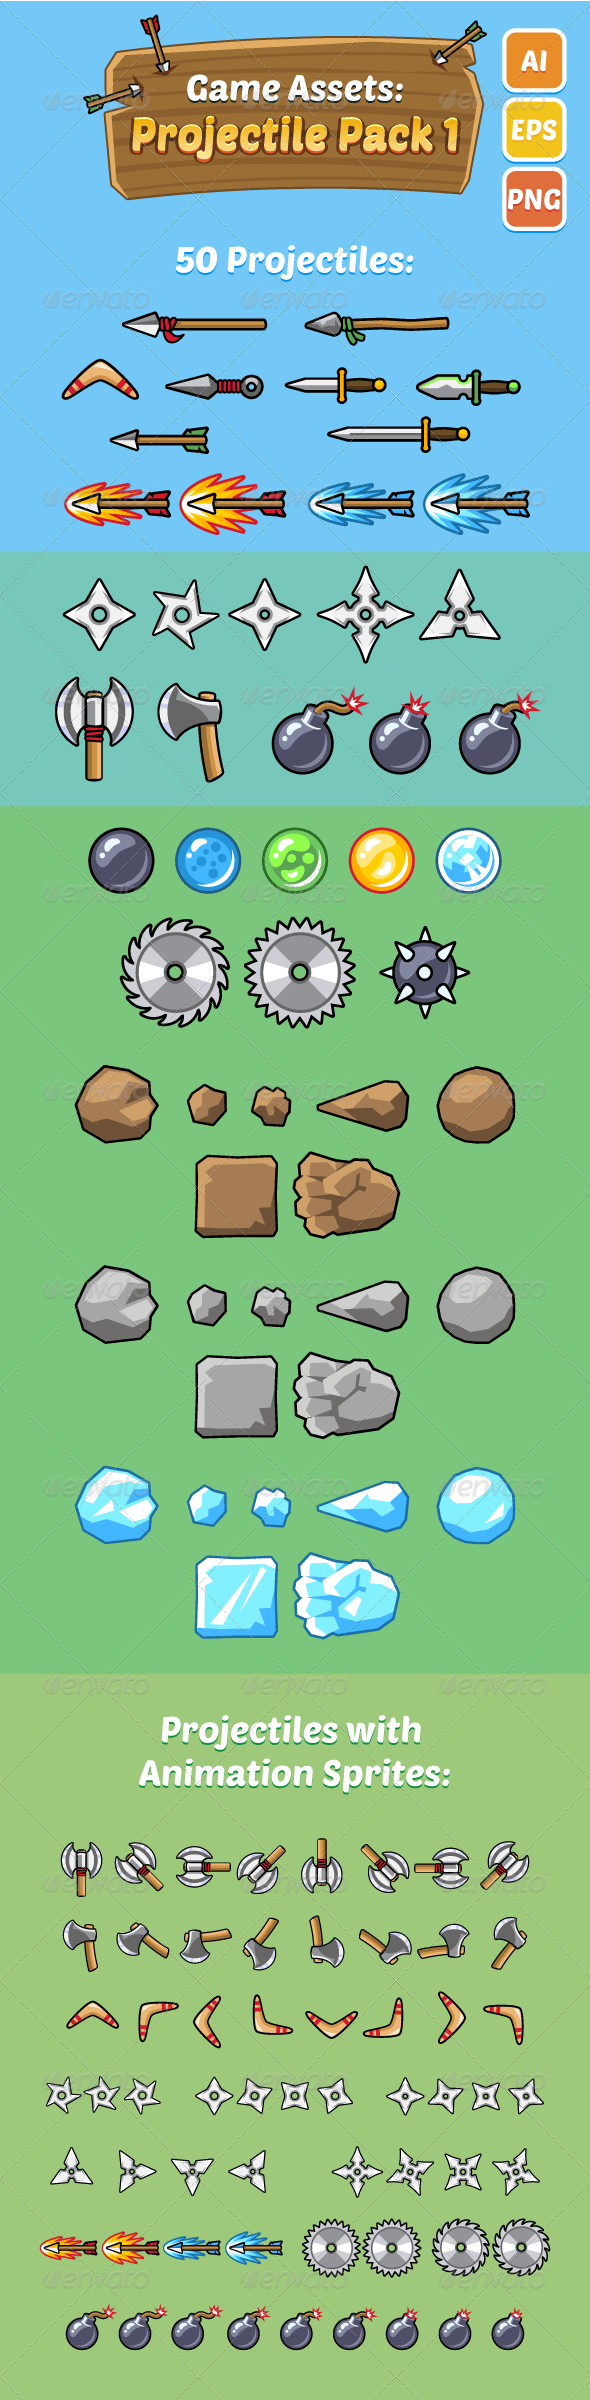 Game Assets Projectile Pack 1 Download here https